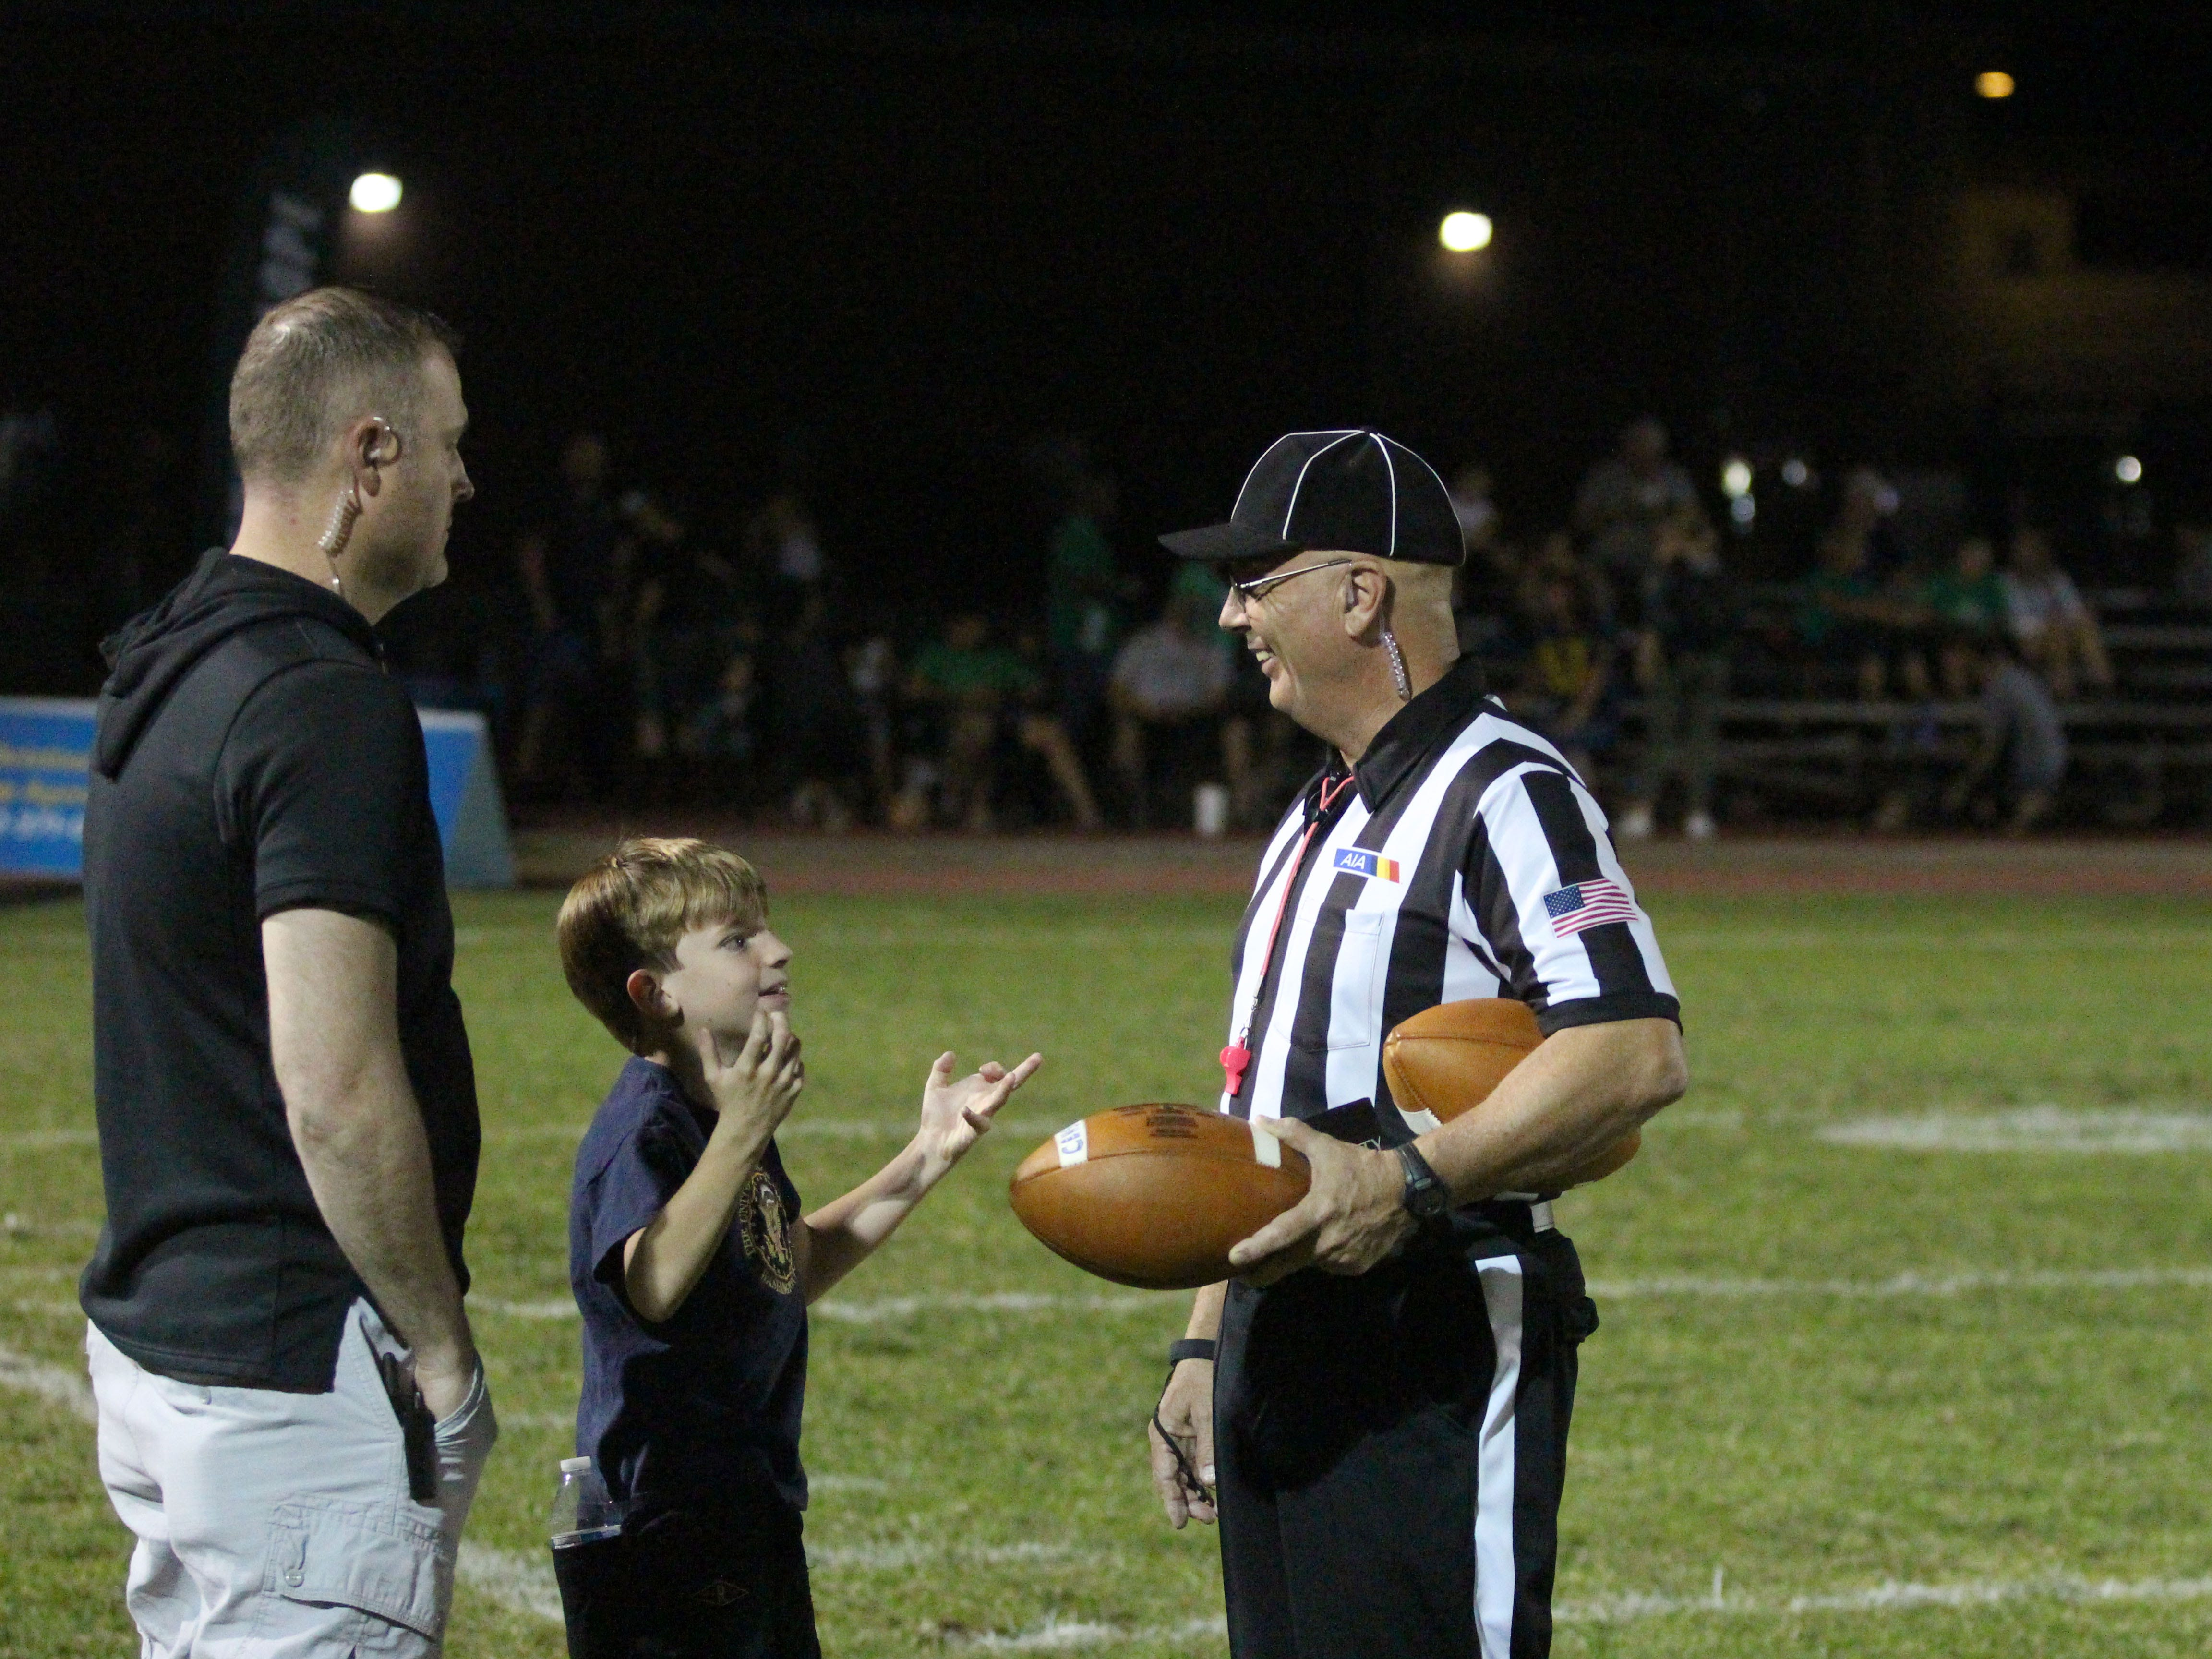 A kid talks to a referee before the Centennial vs Sunnyslope game on Friday night at Sunnyslope High School on Oct. 5, 2018